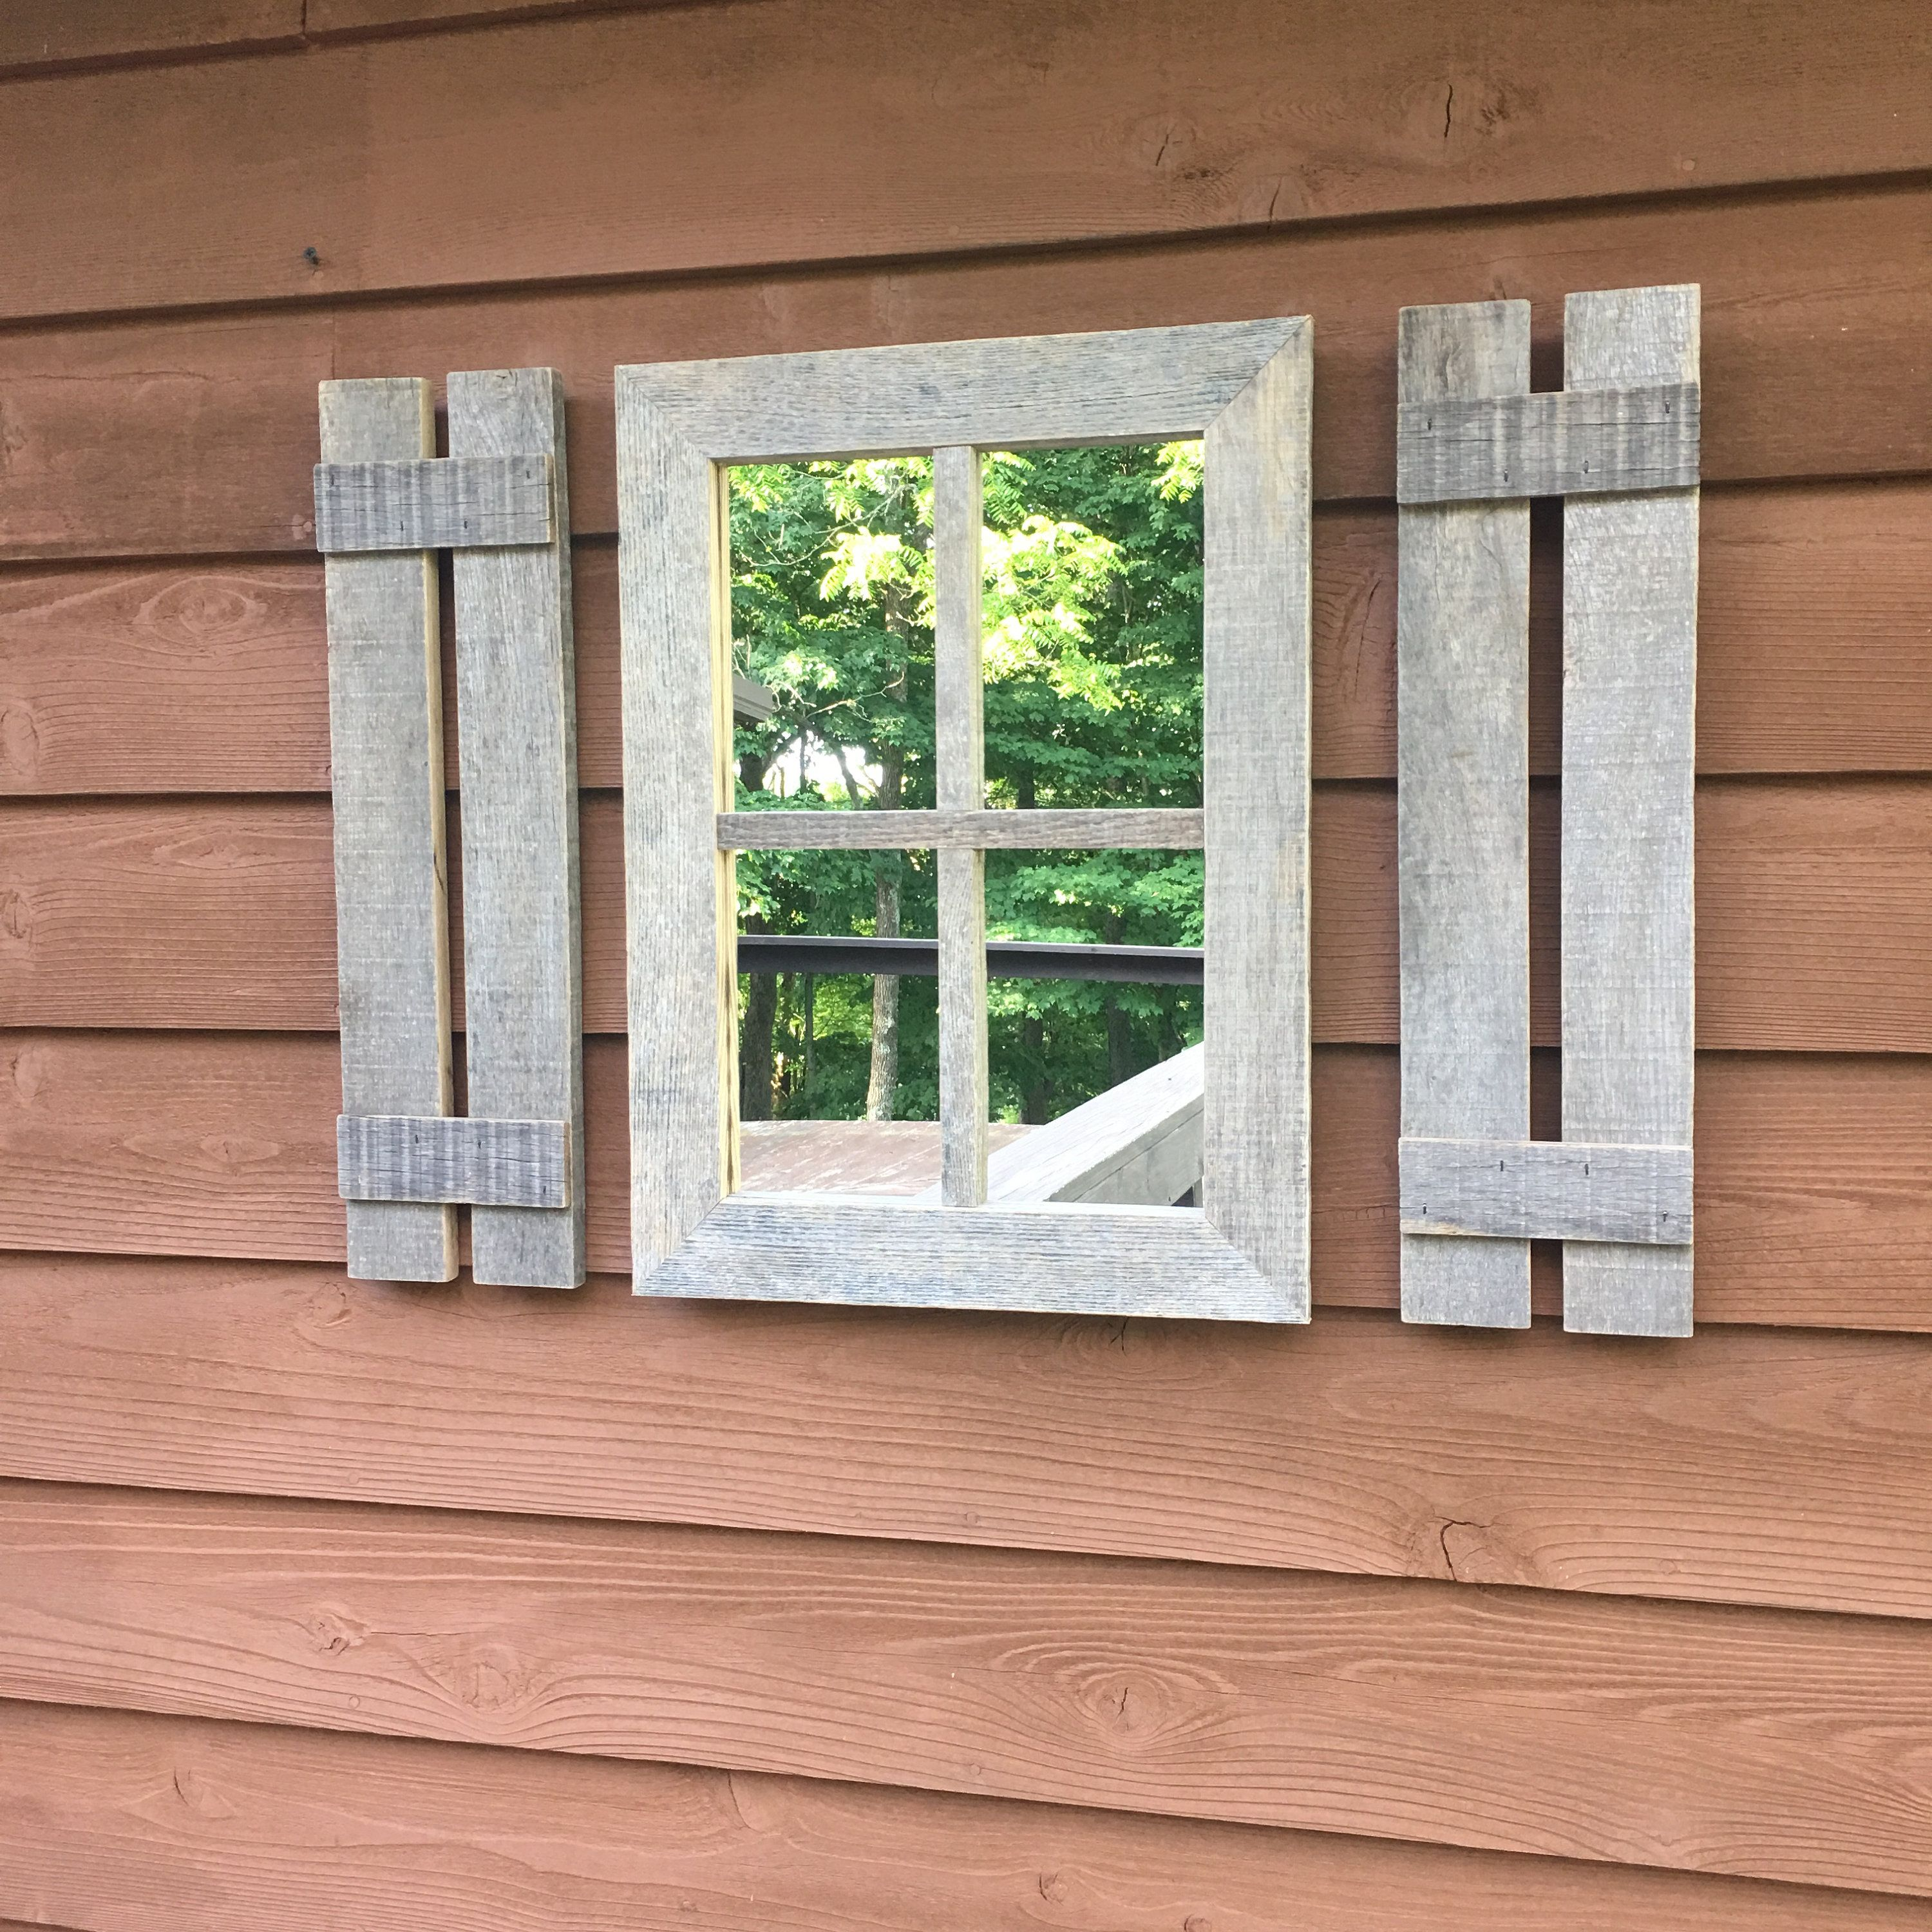 Rustic Primitive Wood Window Frame Farmhouse Wall Decor Primitive Star Large Wall Decor With Star And Pip Garland Rustic Shutters Farmhouse Shutters Shutter Wall Decor